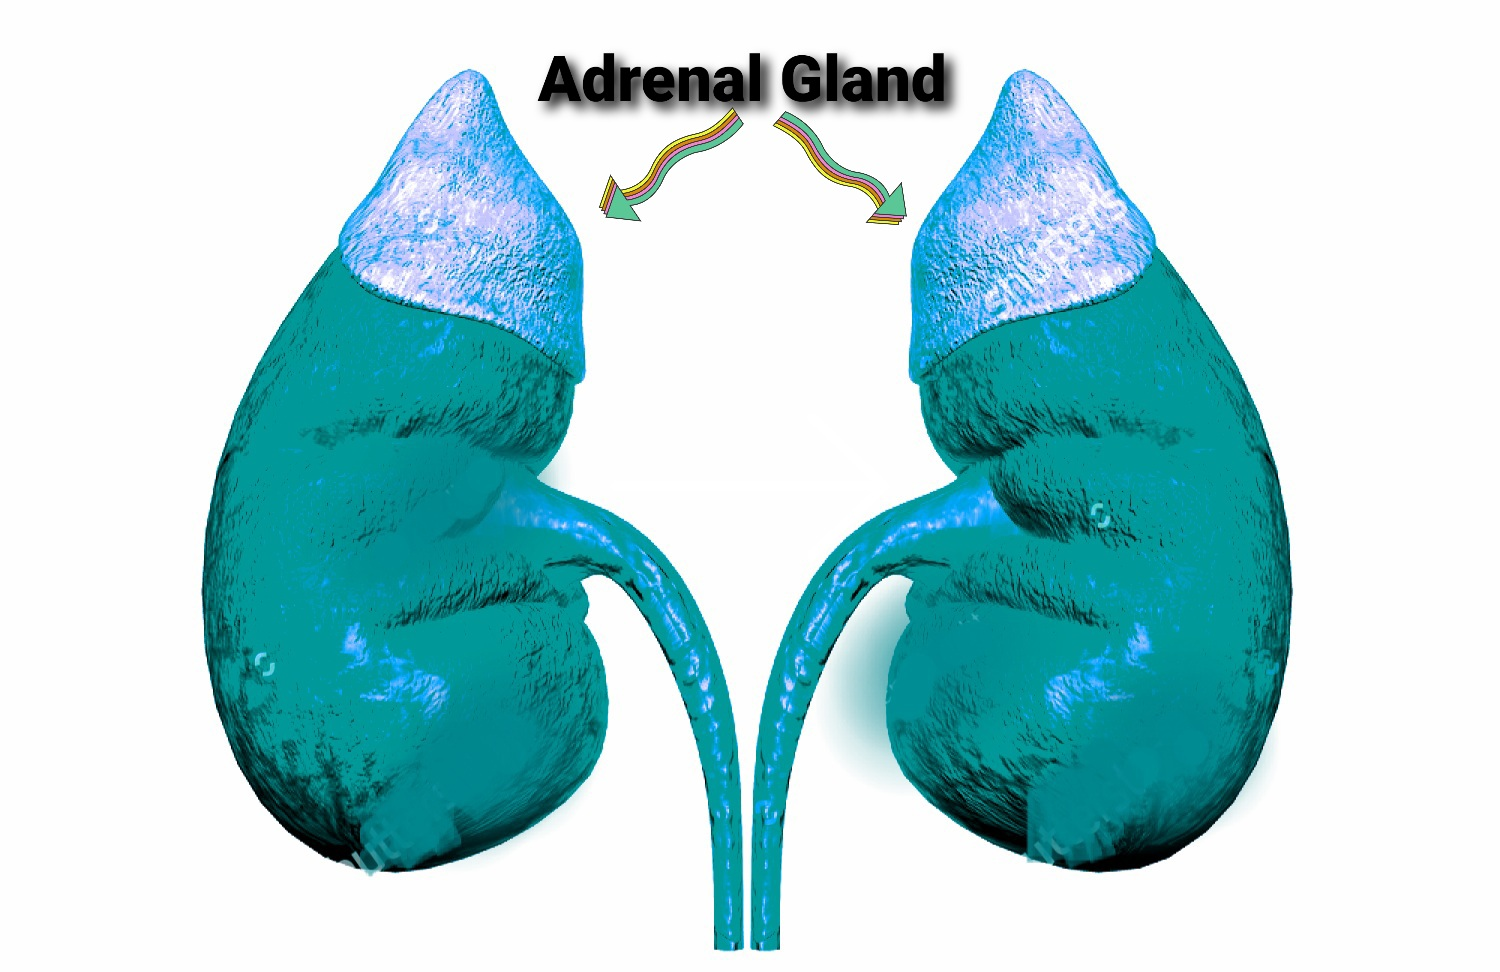 Adrenal gland diagram